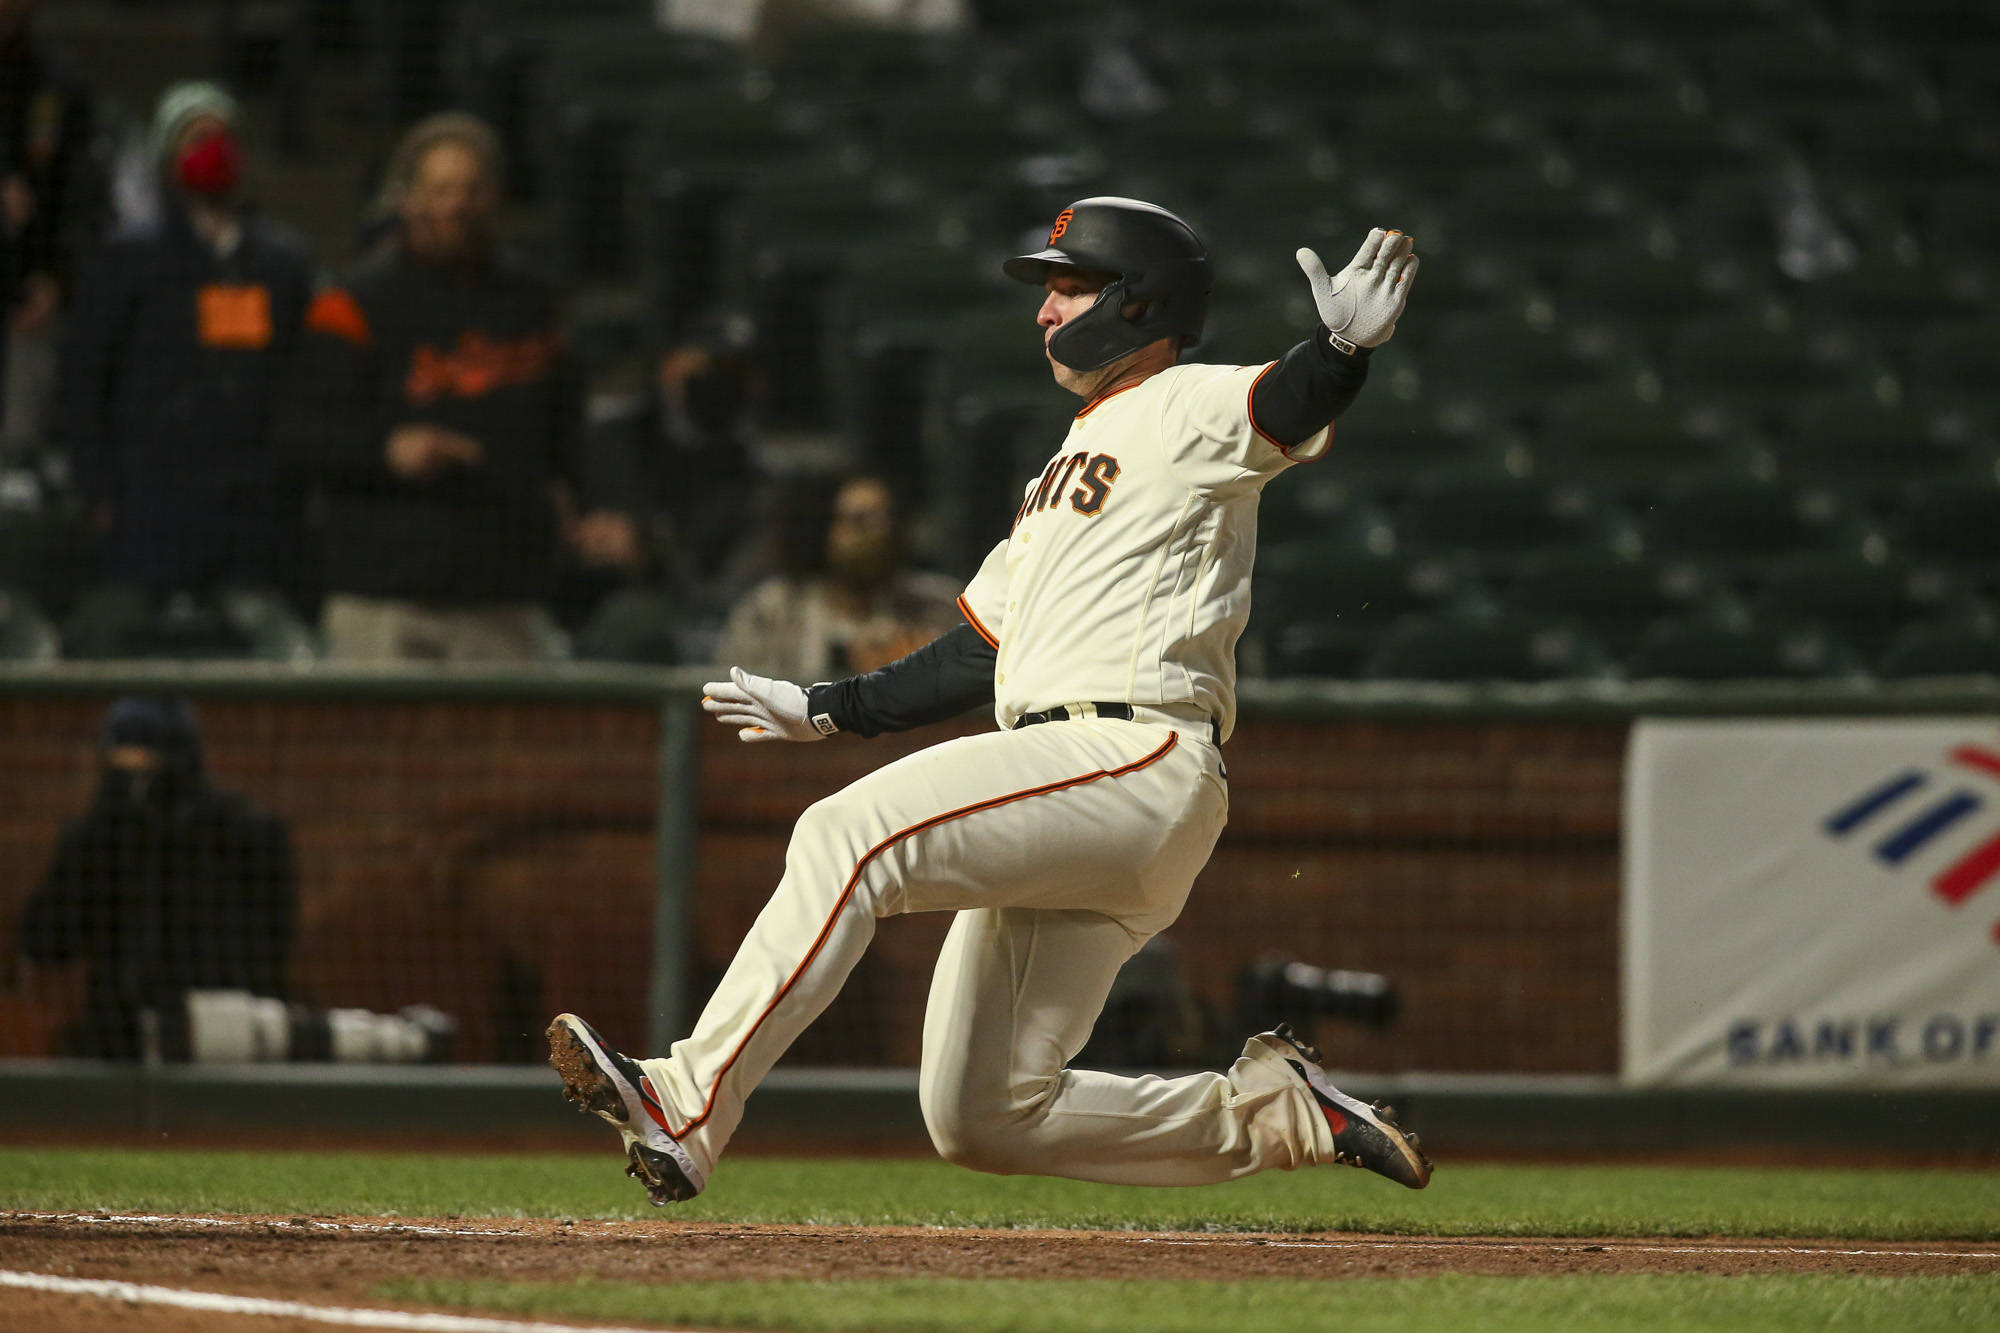 San Francisco Giants catcher Buster Posey (28) slides into home for the score on a triple by San Francisco Giants left fielder Austin Slater (13) in the 6th inning at Oracle Park on April 13, 2021 in San Francisco, California. (Photography by Chris Victorio | Special to the S.F. Examiner).